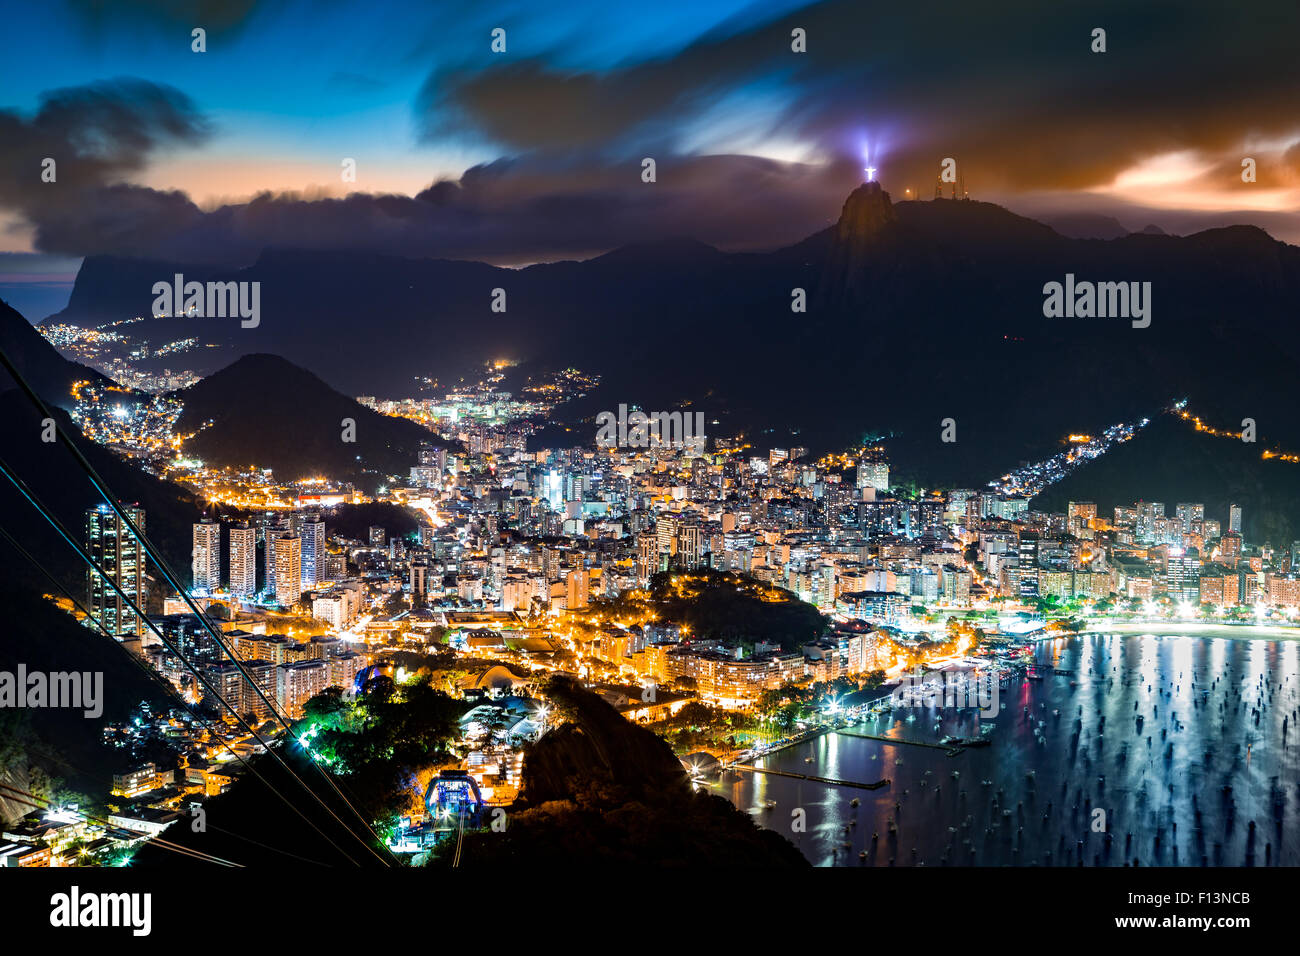 Aerial view over Rio de Janeiro on a hazy night, as viewed from Sugar Loaf peak. - Stock Image